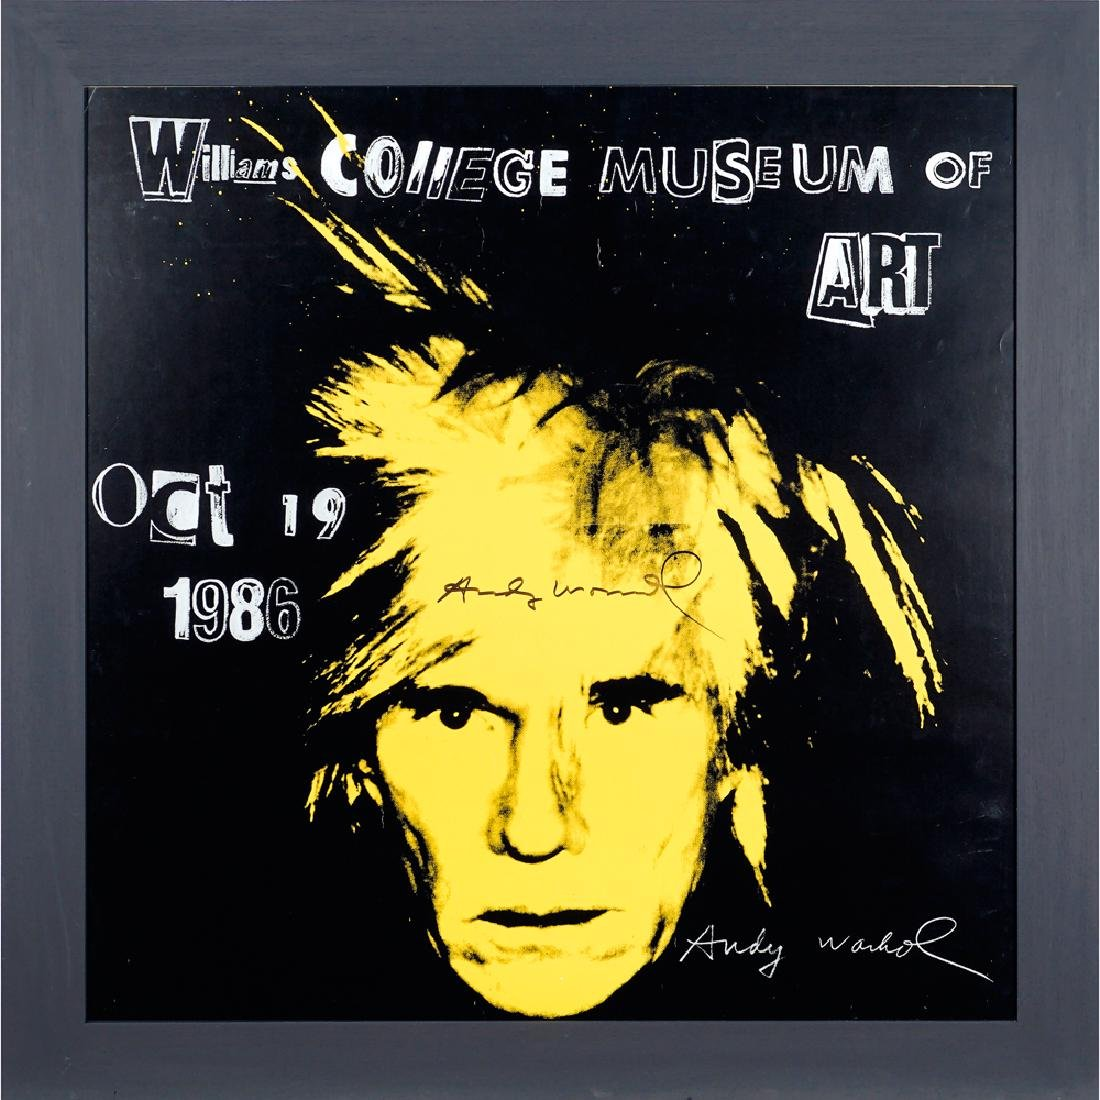 Andy Warhol Pittsburgh 1928 1928 - New York 1987 86